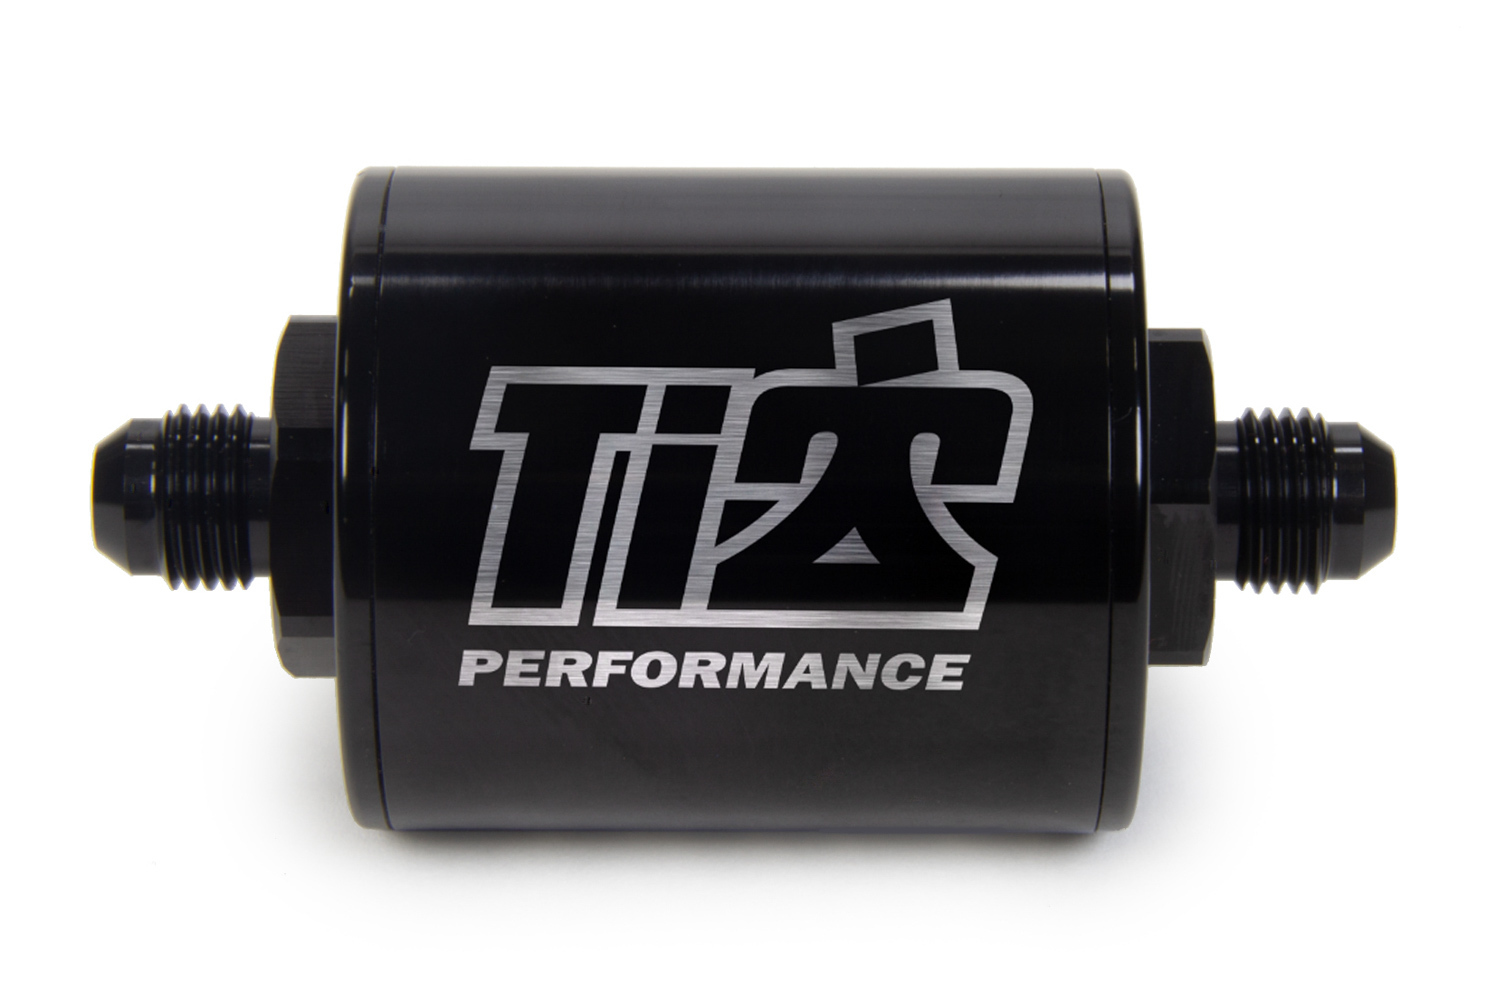 Ti22 Performance 5526 Fuel Filter, In-Line, 70 Micron, Stainless Element, 6 AN Male Inlet, 6 AN Male Outlet, Aluminum, Black Anodize, Each